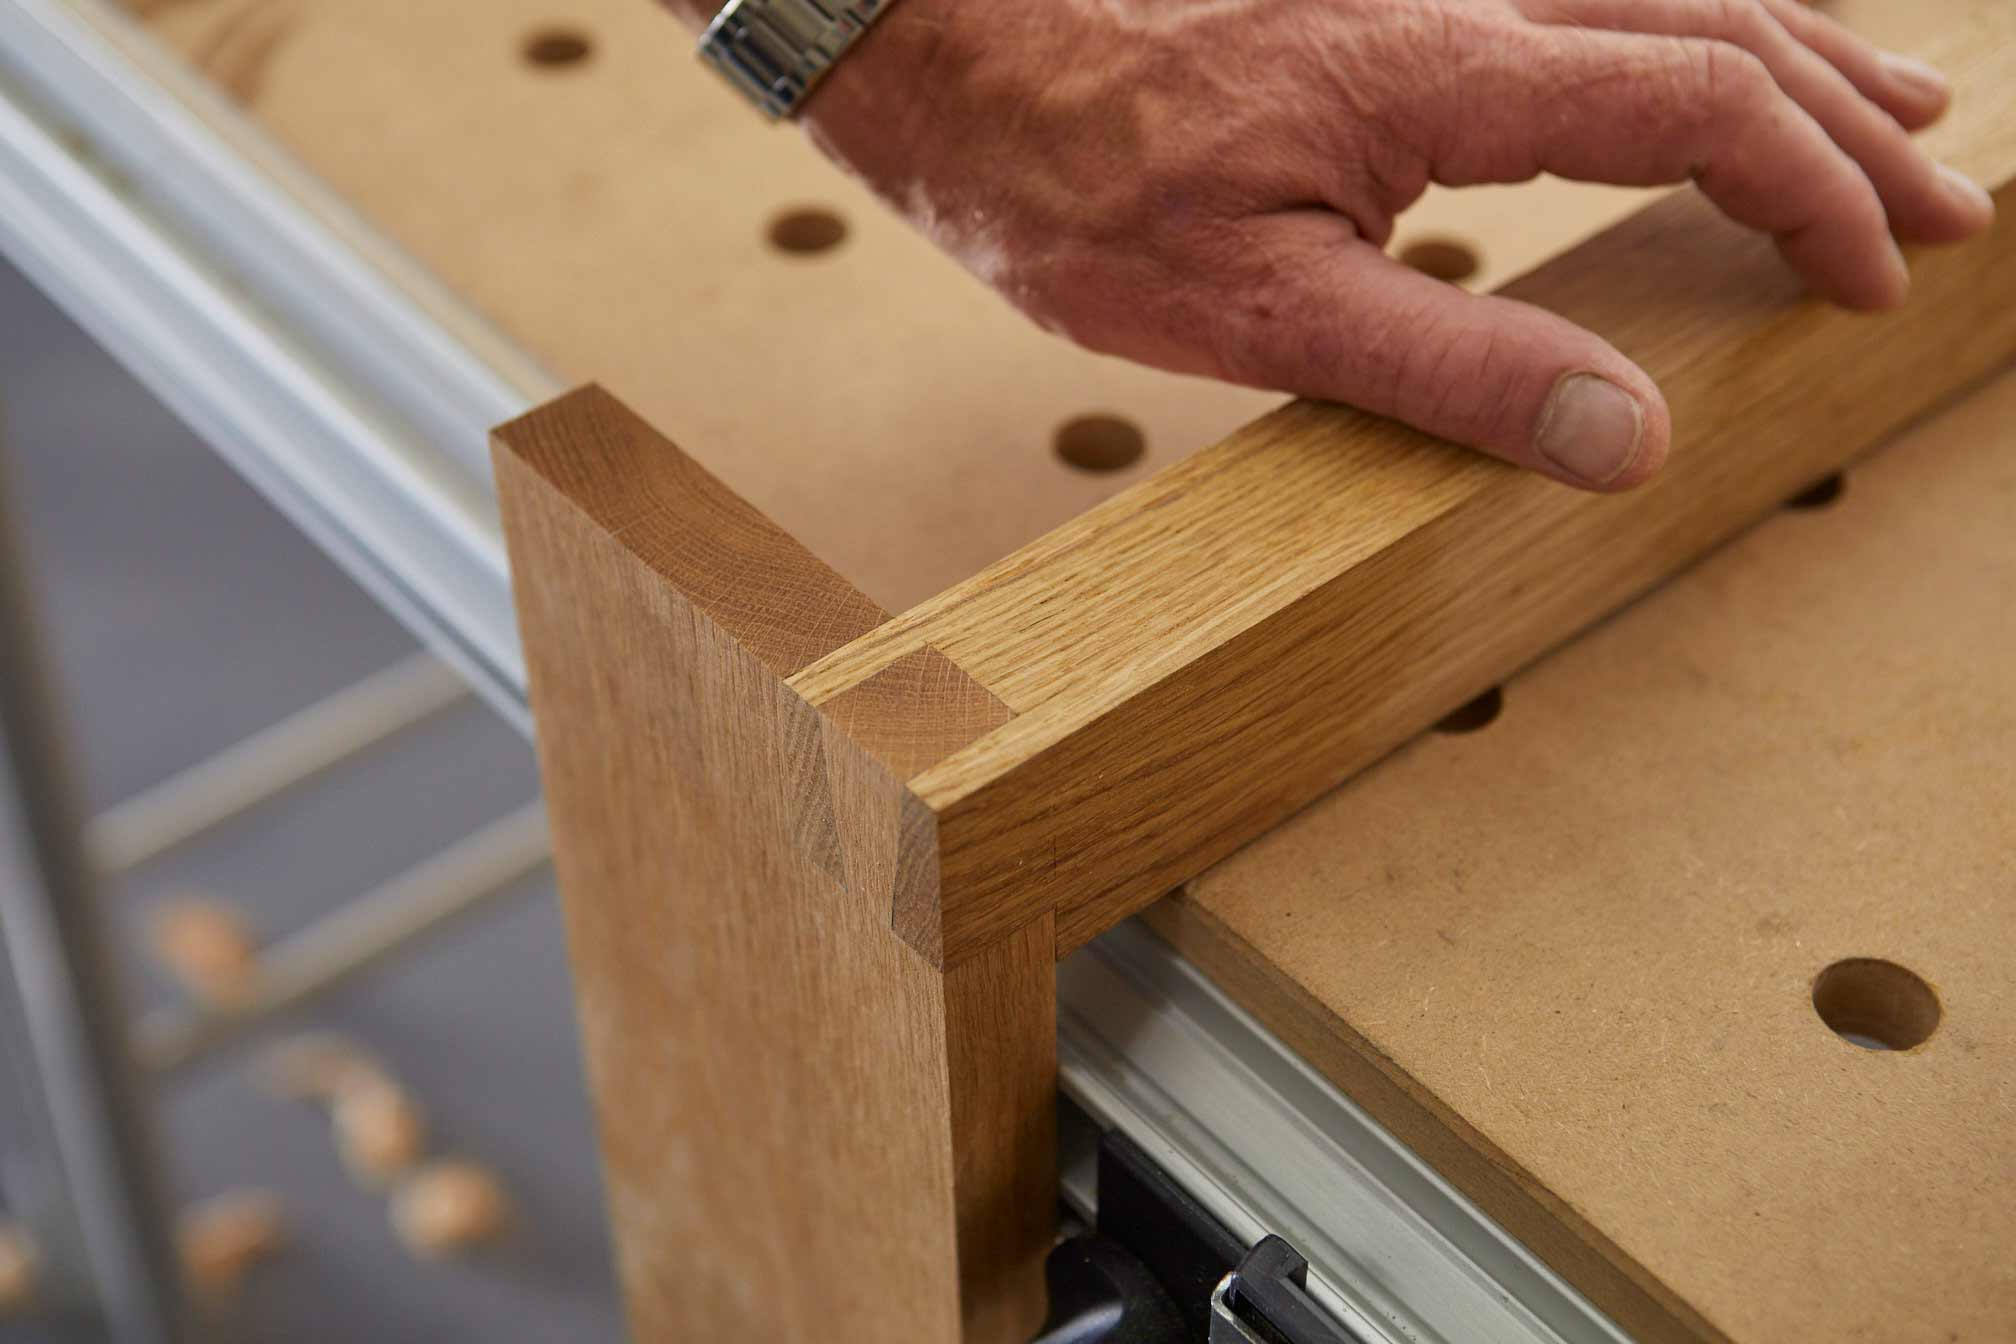 Joint detail Richard building bespoke furniture in St Merryn Cornwall